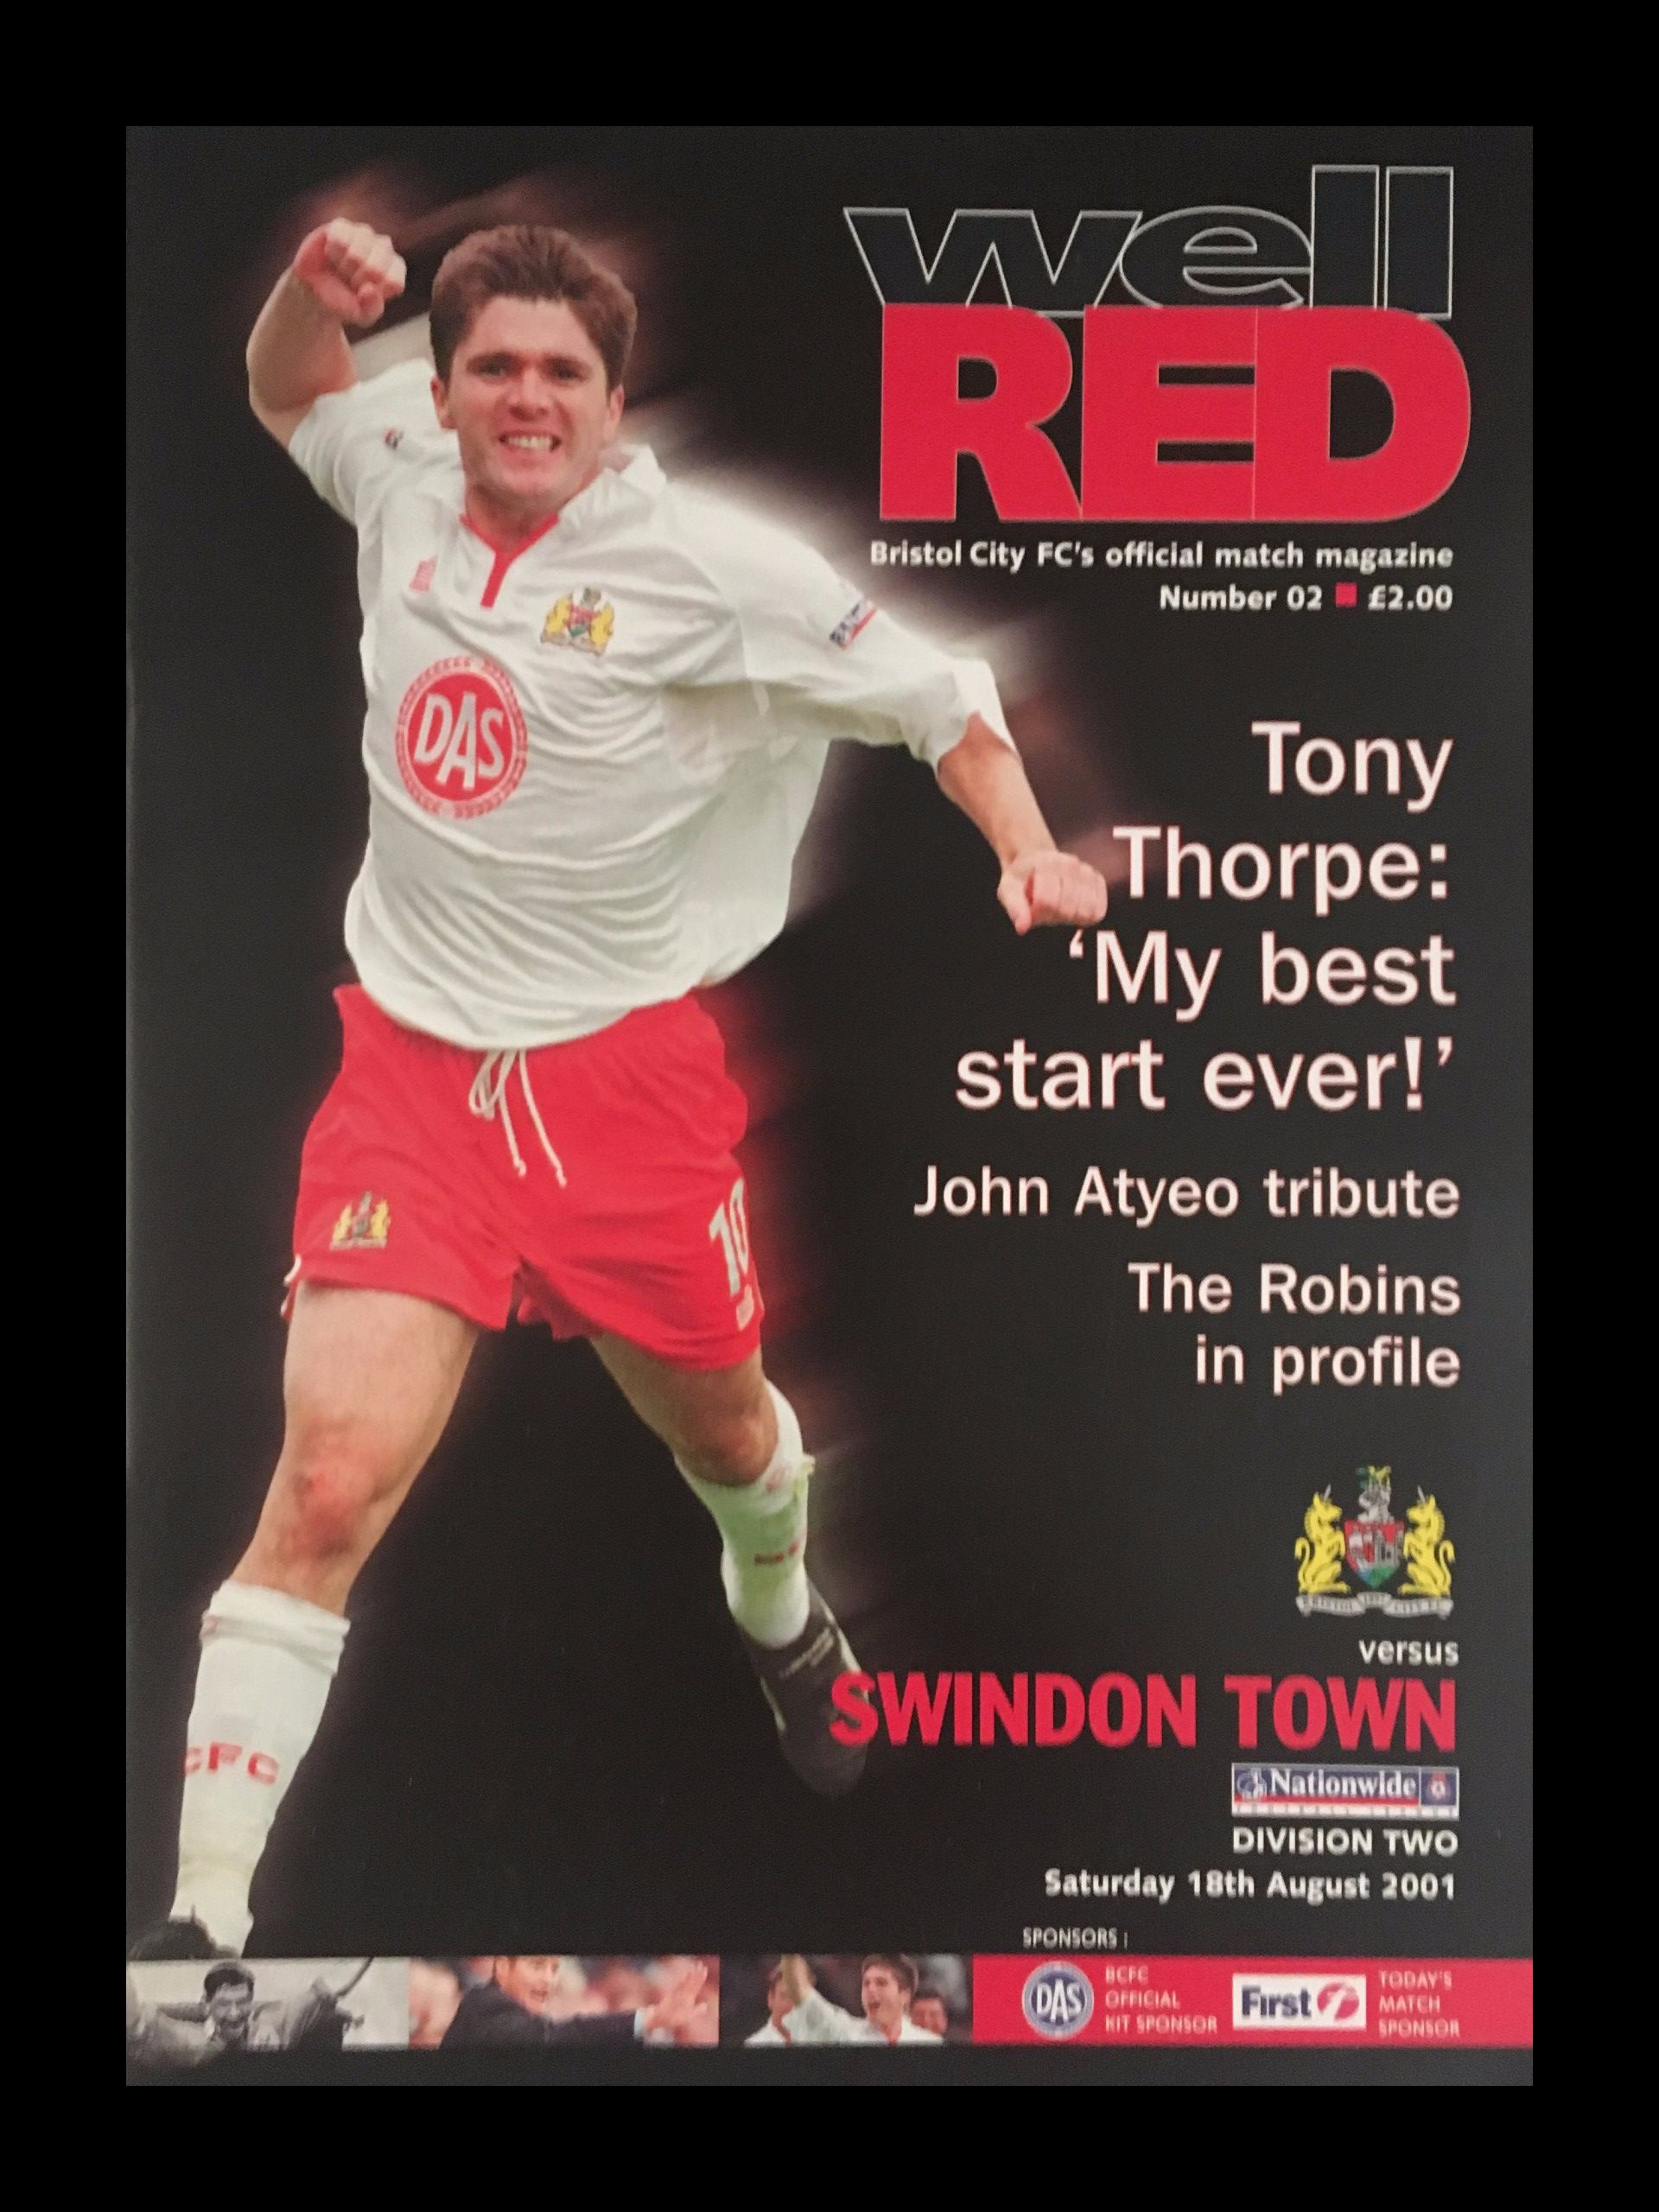 Bristol City v Swindon Town 18-08-2001 Programme